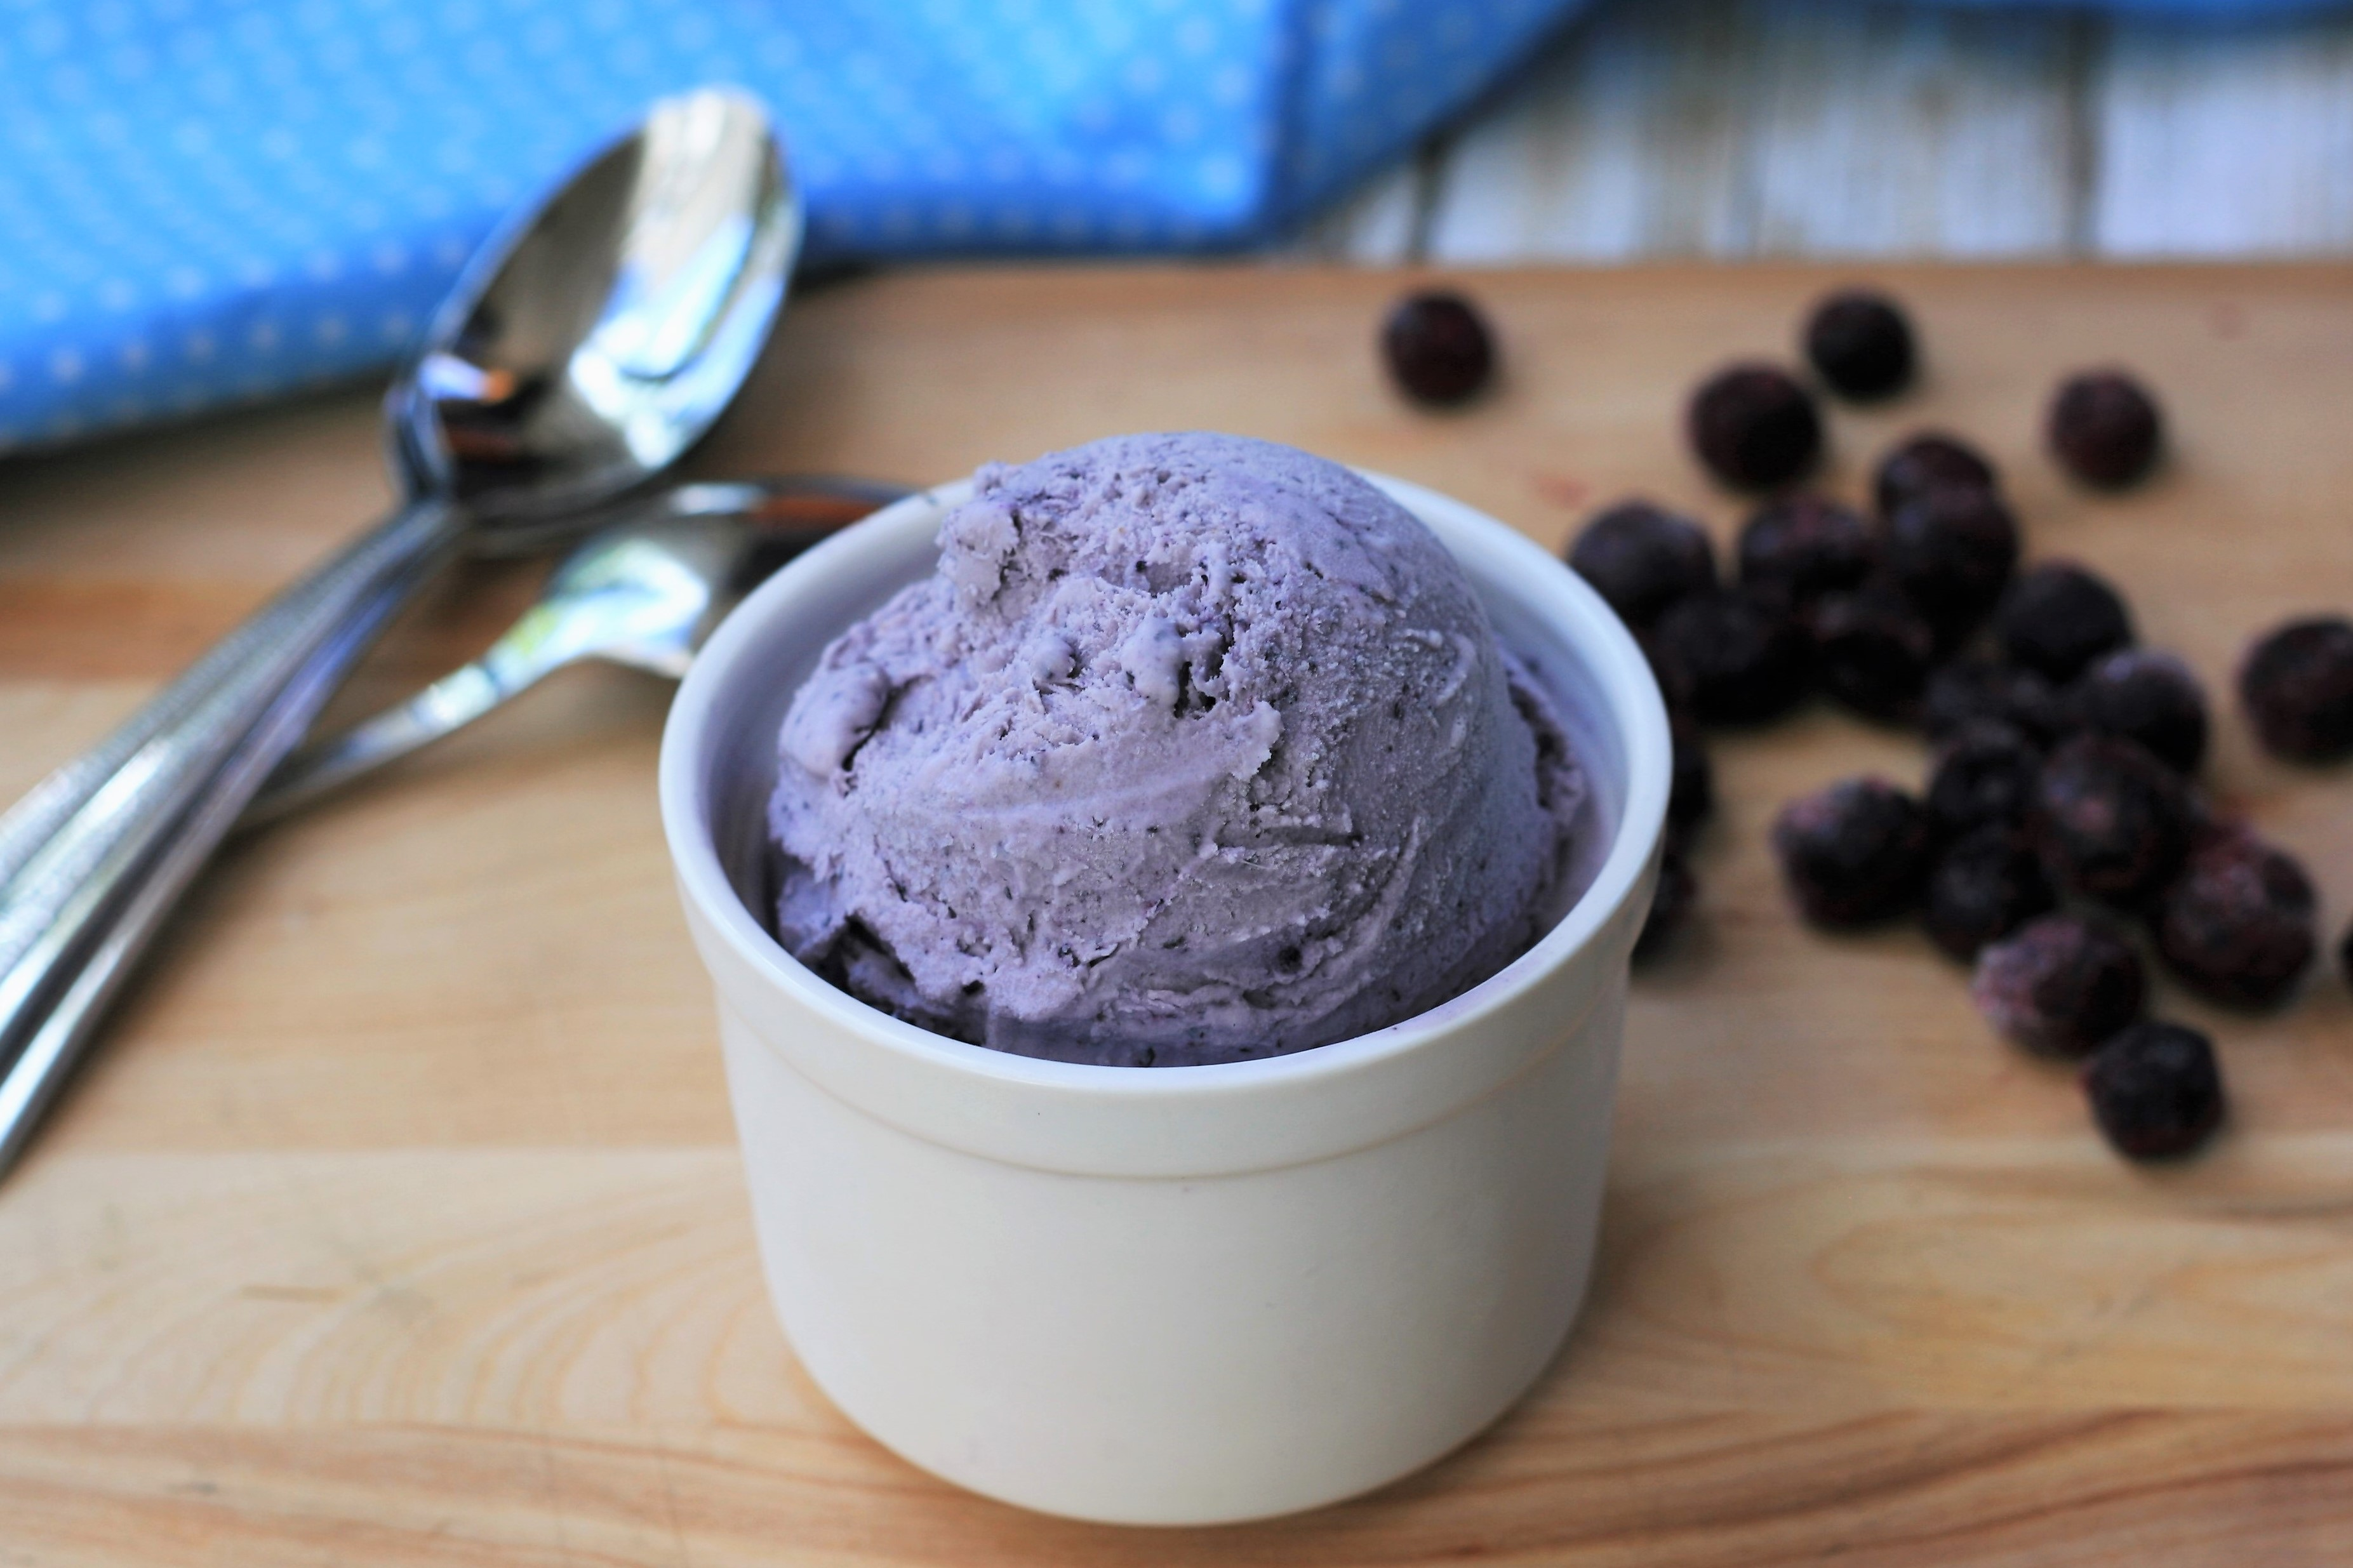 Frozen blueberries and maple extract make this no-churn ice cream unique in flavor (and calories!). It's a low-carb way to satisfy any sweet tooth.